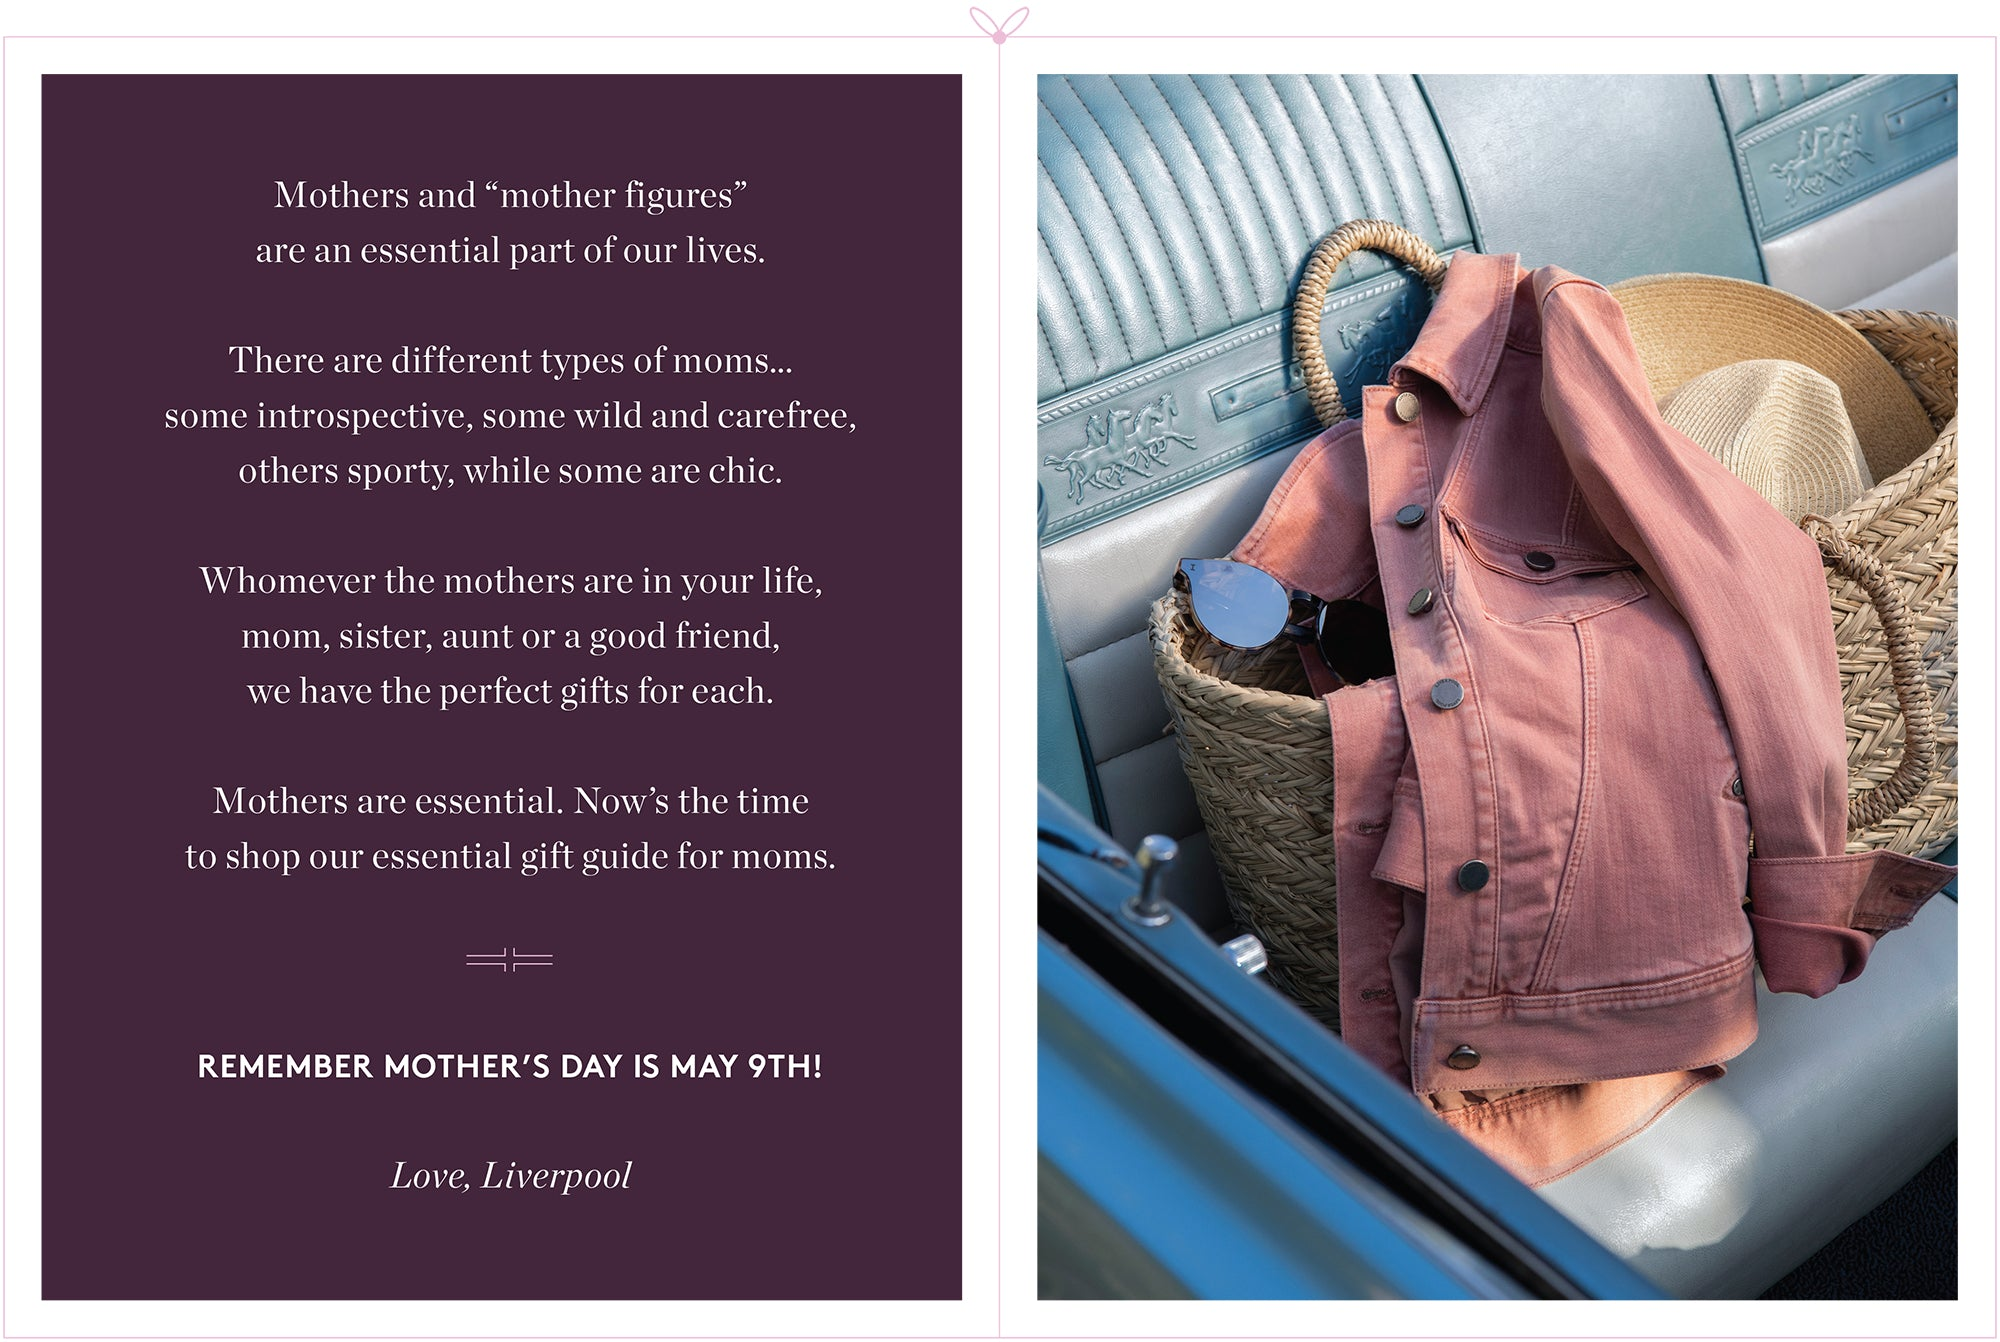 """Mothers and """"mother figures"""" are an essential part of our lives. There are different types of moms… some introspective, some wild and carefree, others sporty, while some are chic. Whomever the mothers are in your life, mom, sister, aunt or a good friend, we have the perfect gifts for each. Mothers are essential. Now's the time to shop our essential gift guide for moms. REMEMBER MOTHER'S DAY IS MAY 9TH! Love, Liverpool"""